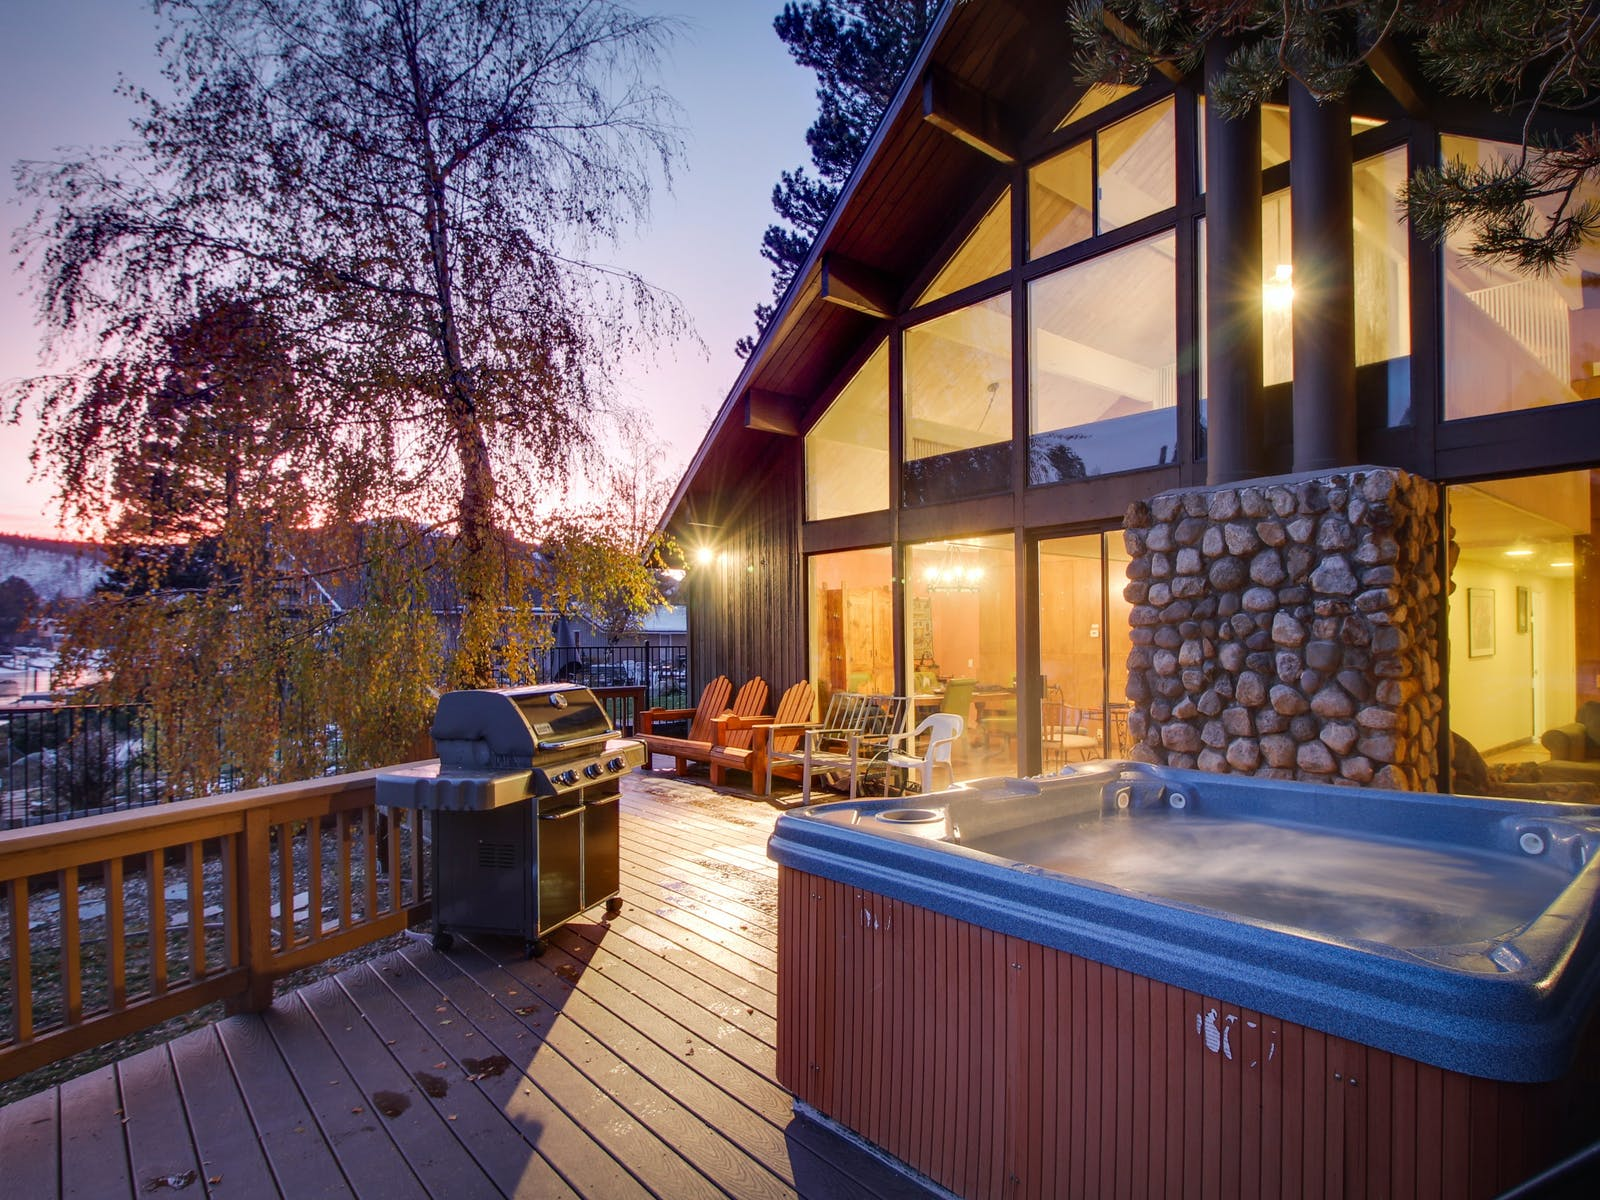 Outdoor hot tub of vacation rental in South Lake Tahoe